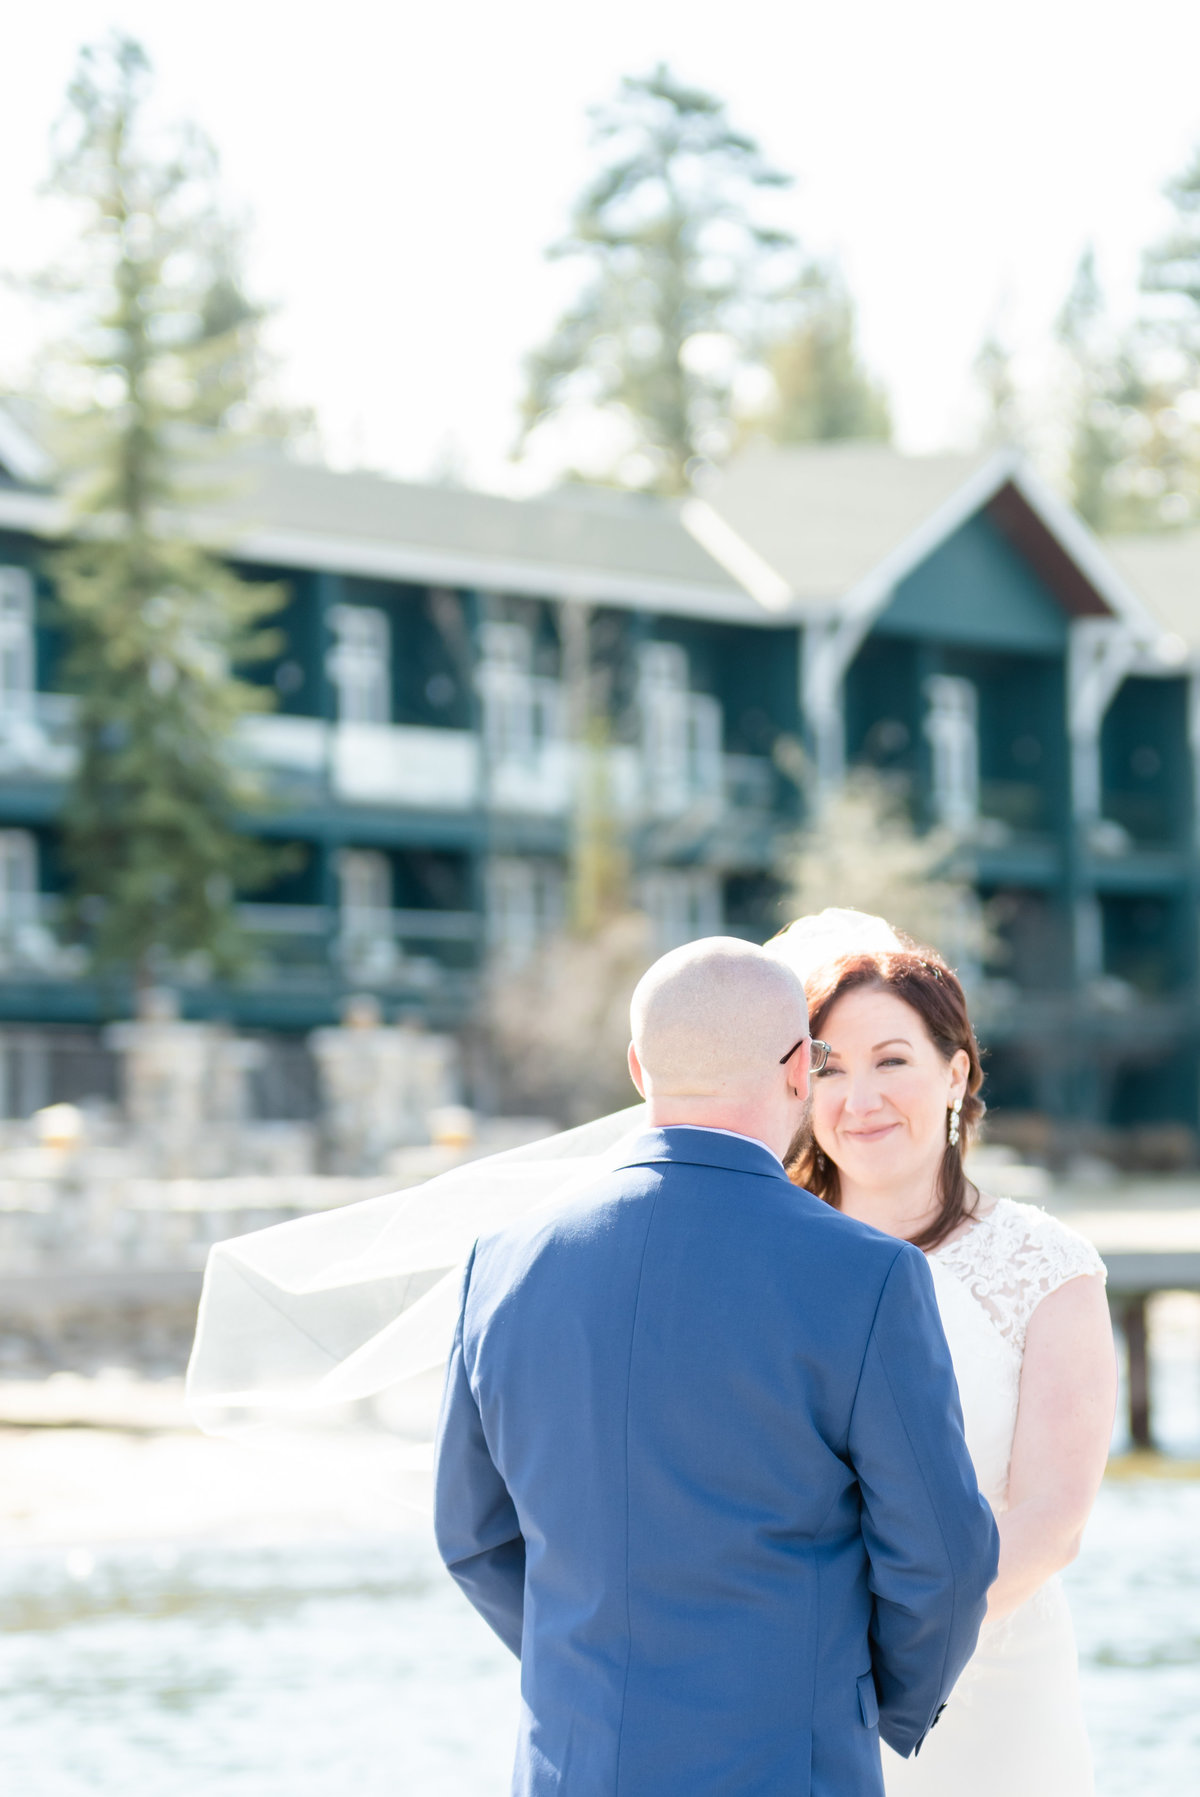 Denise-and-bryan-wedding-photography-shore-lodge-mccall-boise-594